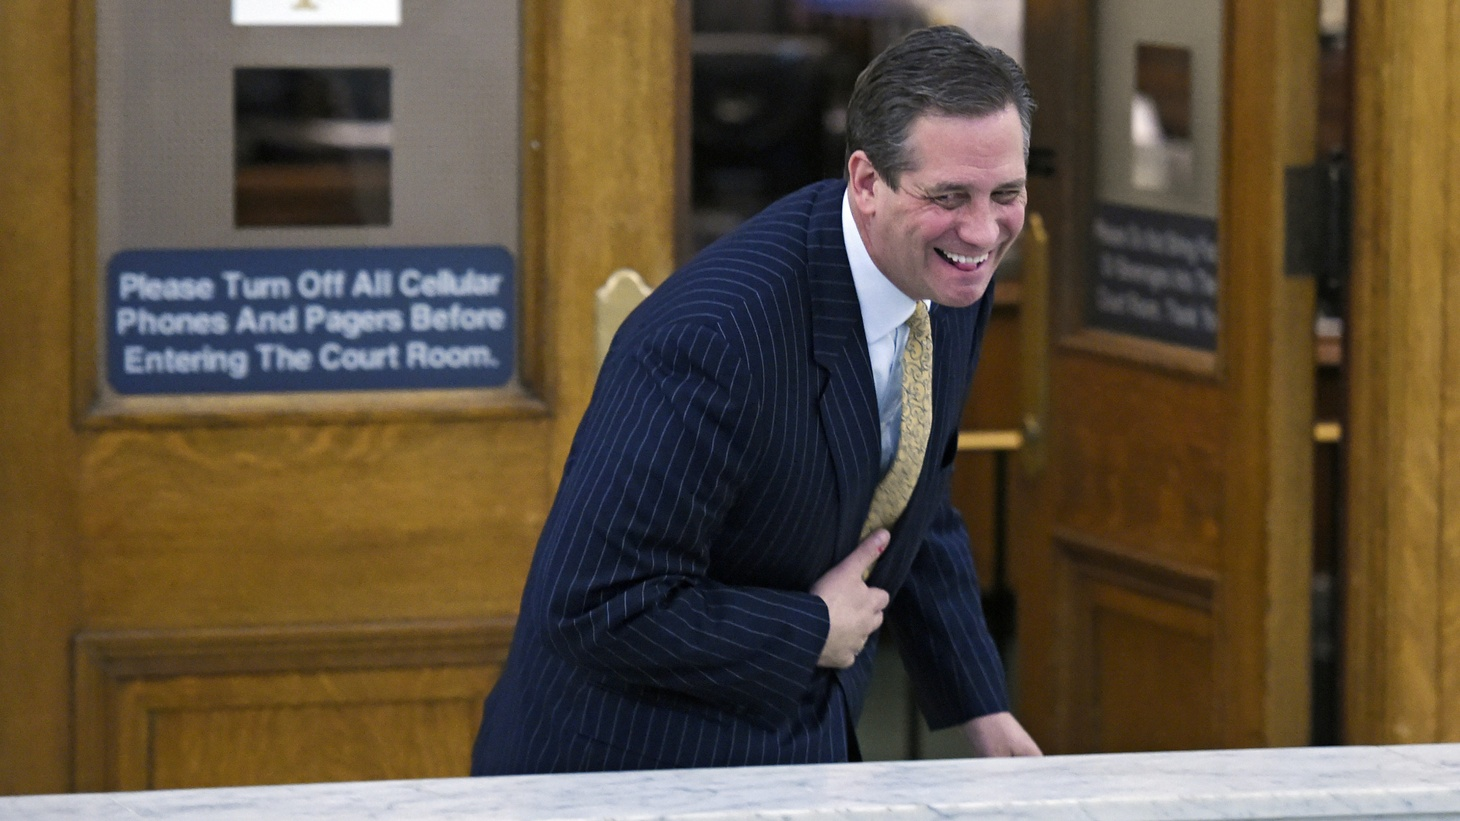 Former Montgomery County District Attorney Bruce Castor shares a laugh with a person (not in photo) as he leaves Montgomery County Courtroom A after spending all day on the witness stand in a pre-trail hearing for entertainer Bill Cosby and his sexual assault case in Norristown, Pennsylvania, February 2, 2016. Castor testified on Tuesday that he decided in 2005 not to bring charges over the Constand allegations.